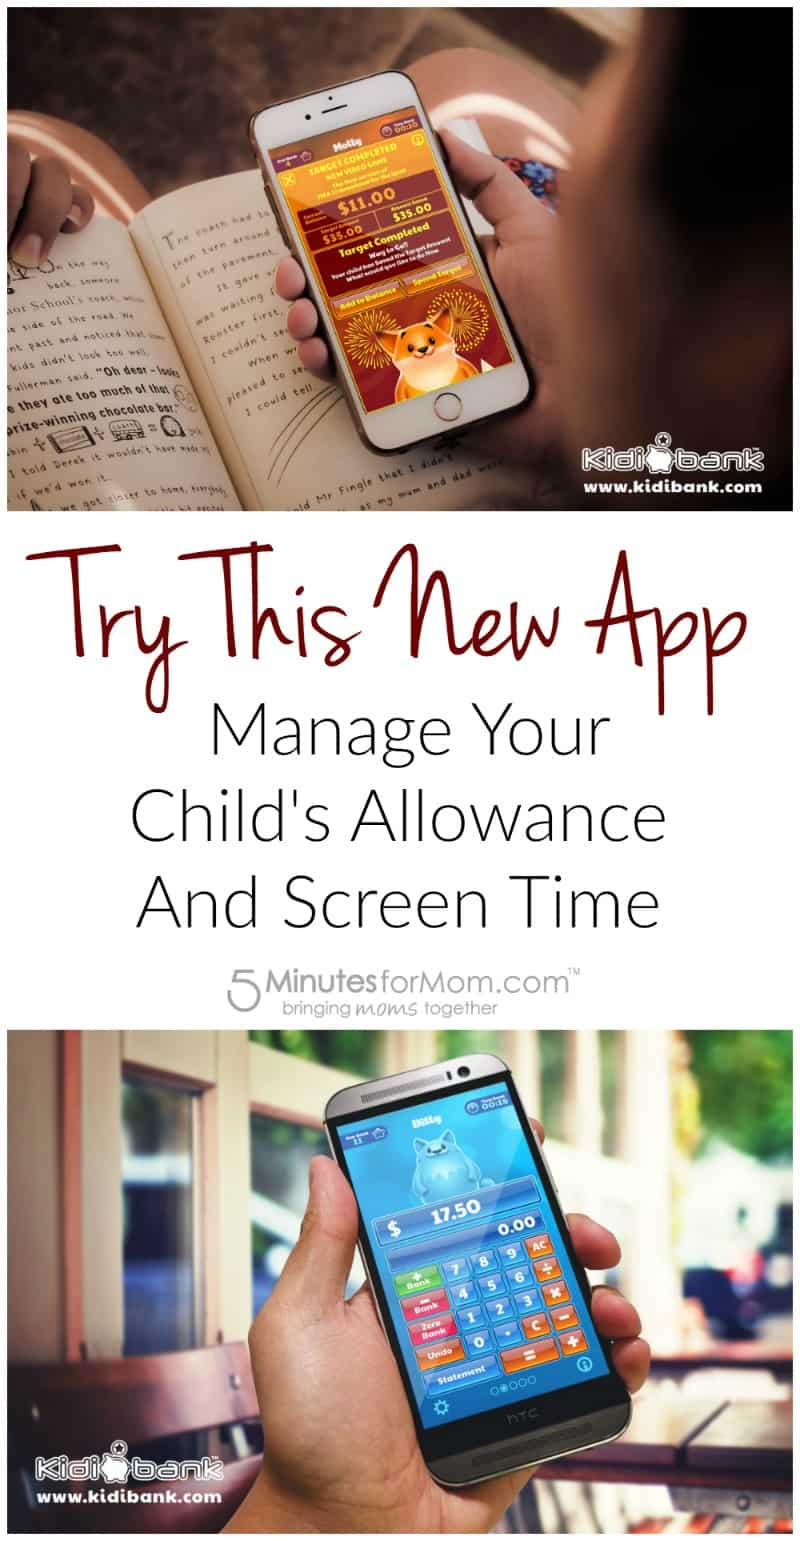 Try this new app to manage your childs allowance and screen time